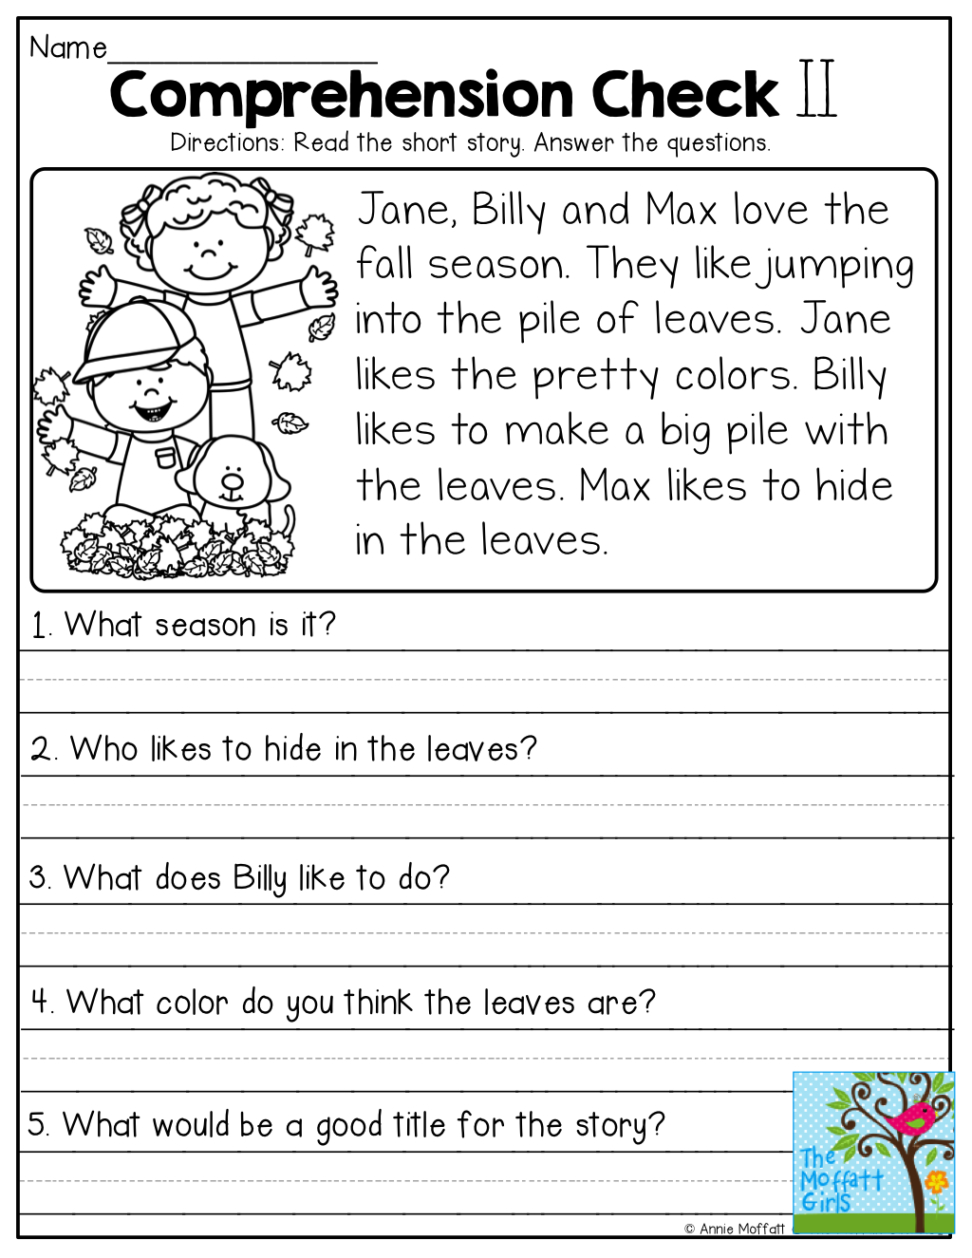 Worksheet. Free Printable Reading Comprehension Worksheets - Free Printable Reading Worksheets